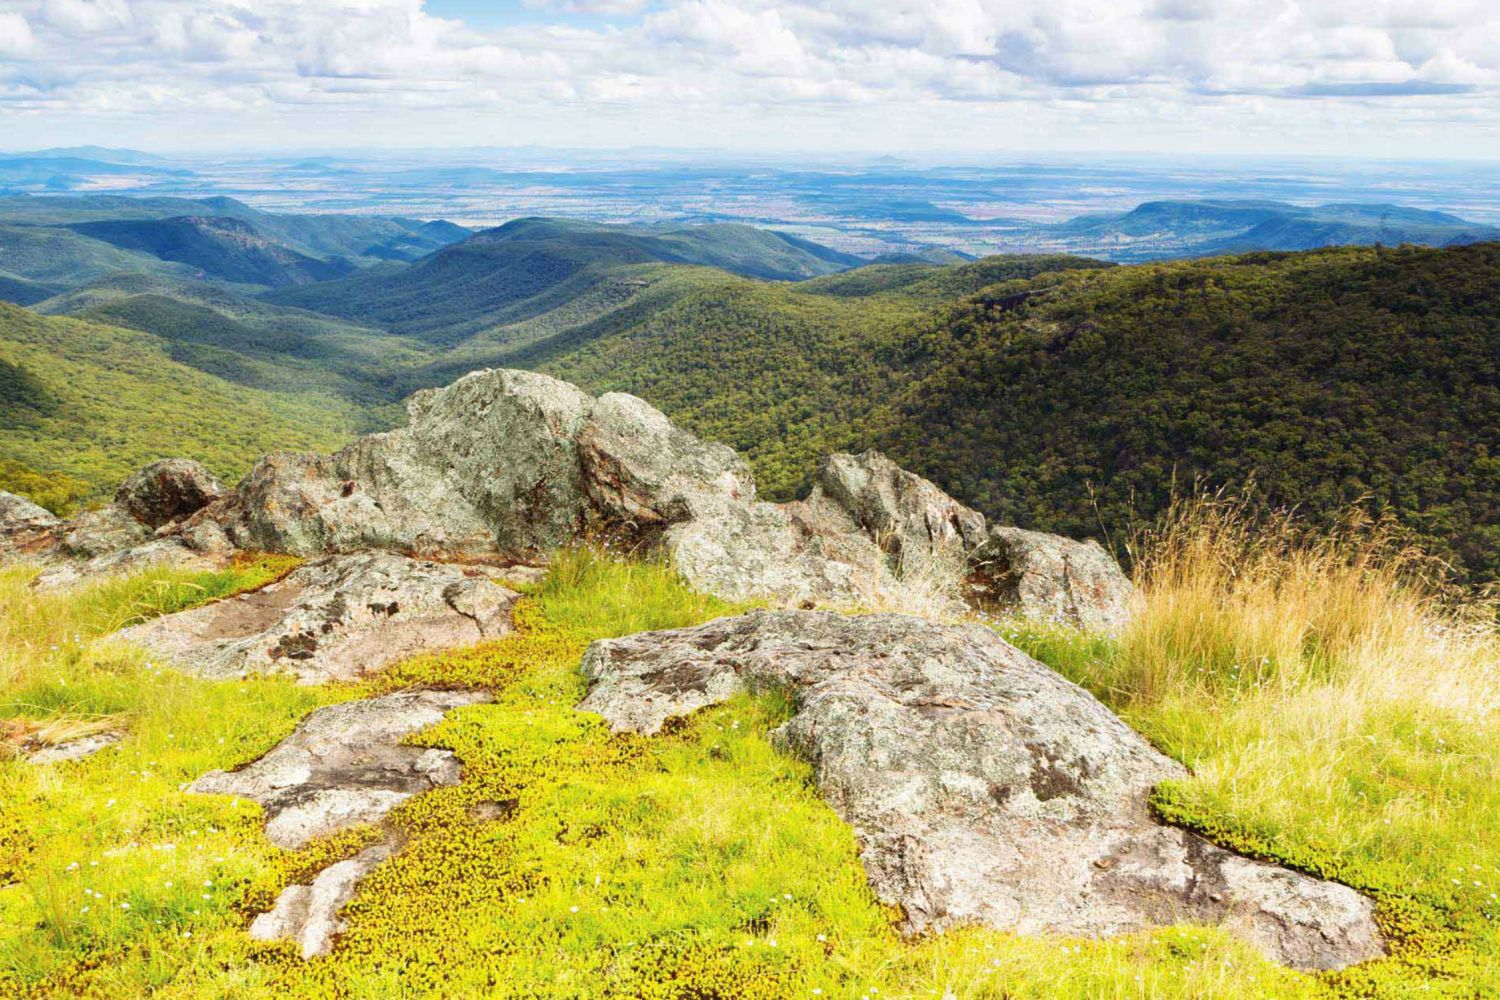 A mesmerising view in Mount Kaputar National Park, northwest NSW